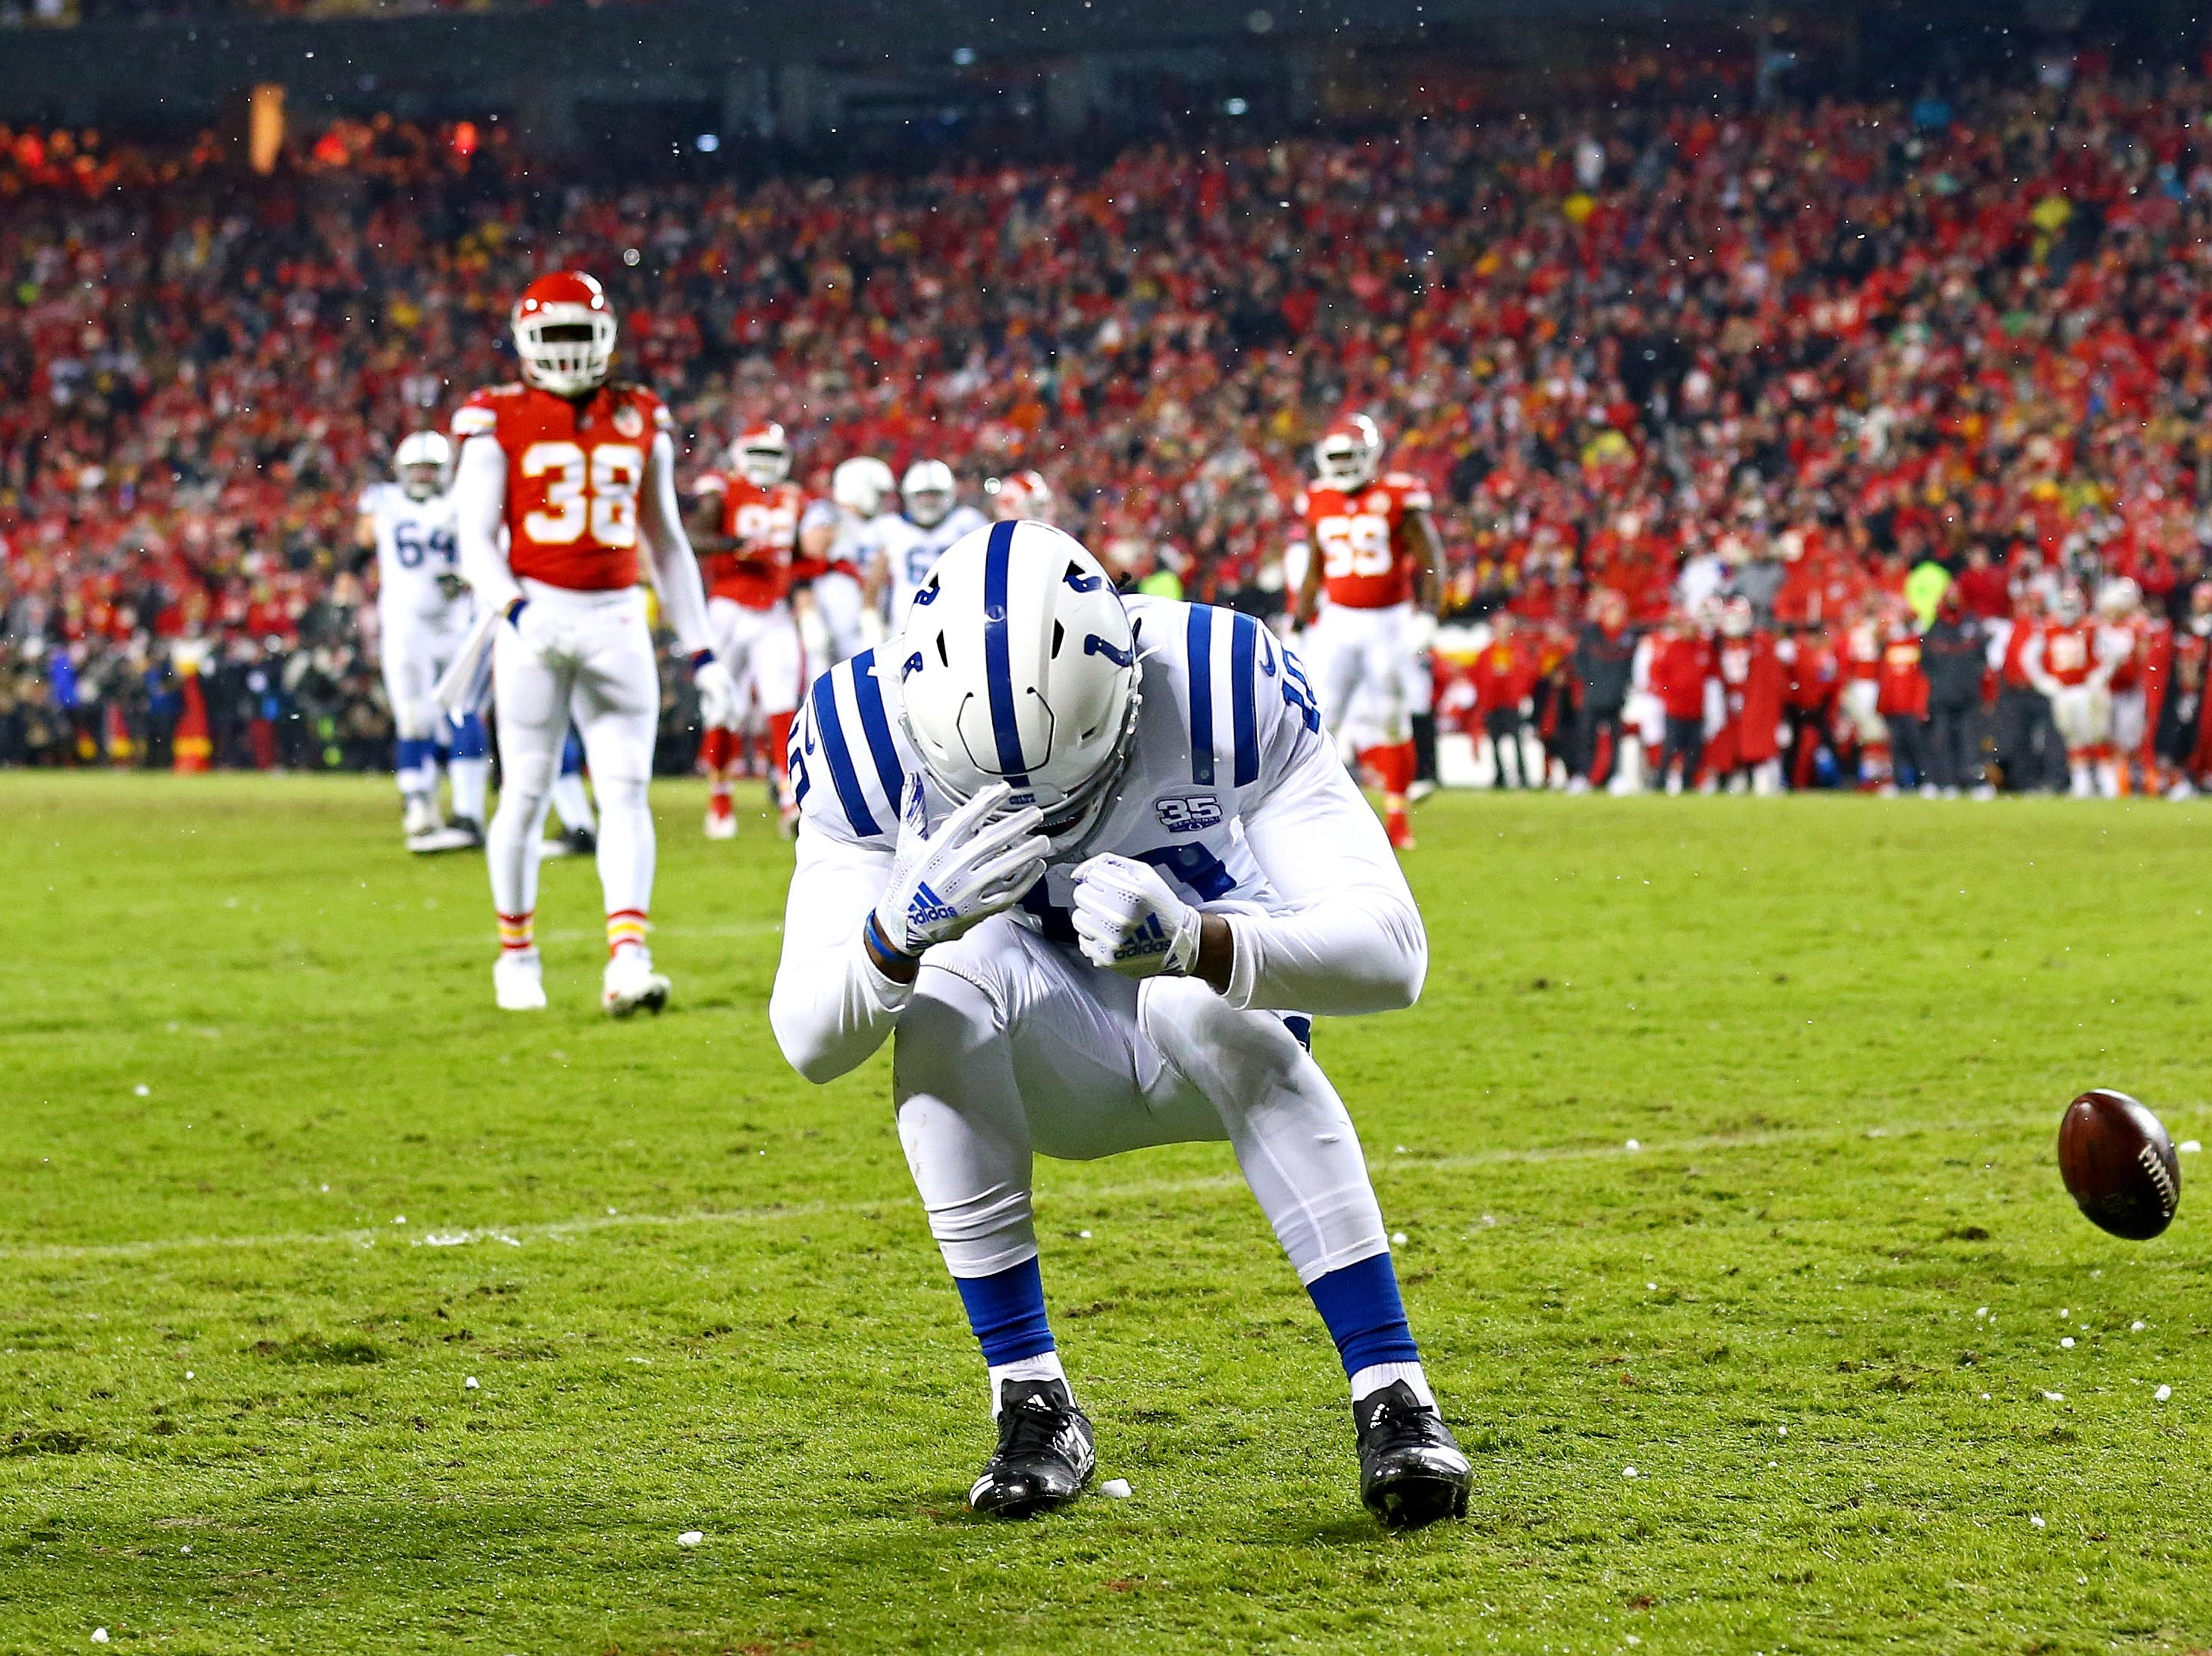 Indianapolis Colts wide receiver Daurice Fountain (10) reacts after missing a catch during the fourth quarter against the Kansas City Chiefs at Arrowhead Stadium.